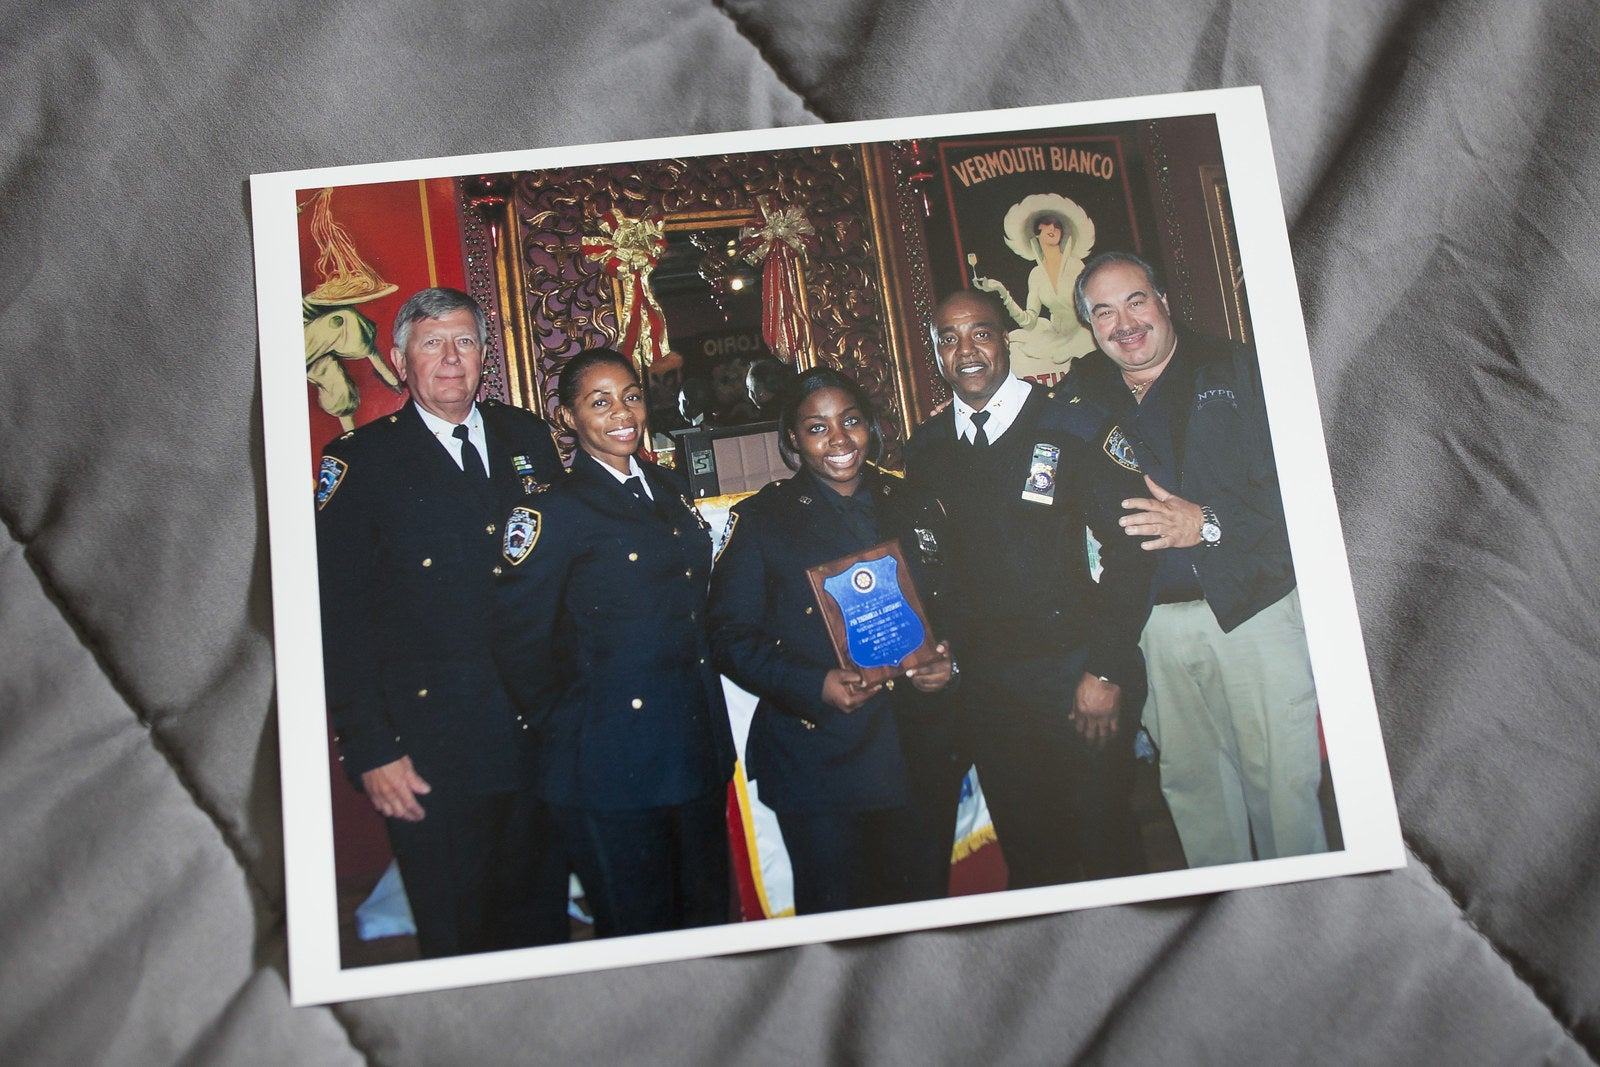 Inserillo (center) holds a plaque when she won officer of the month.